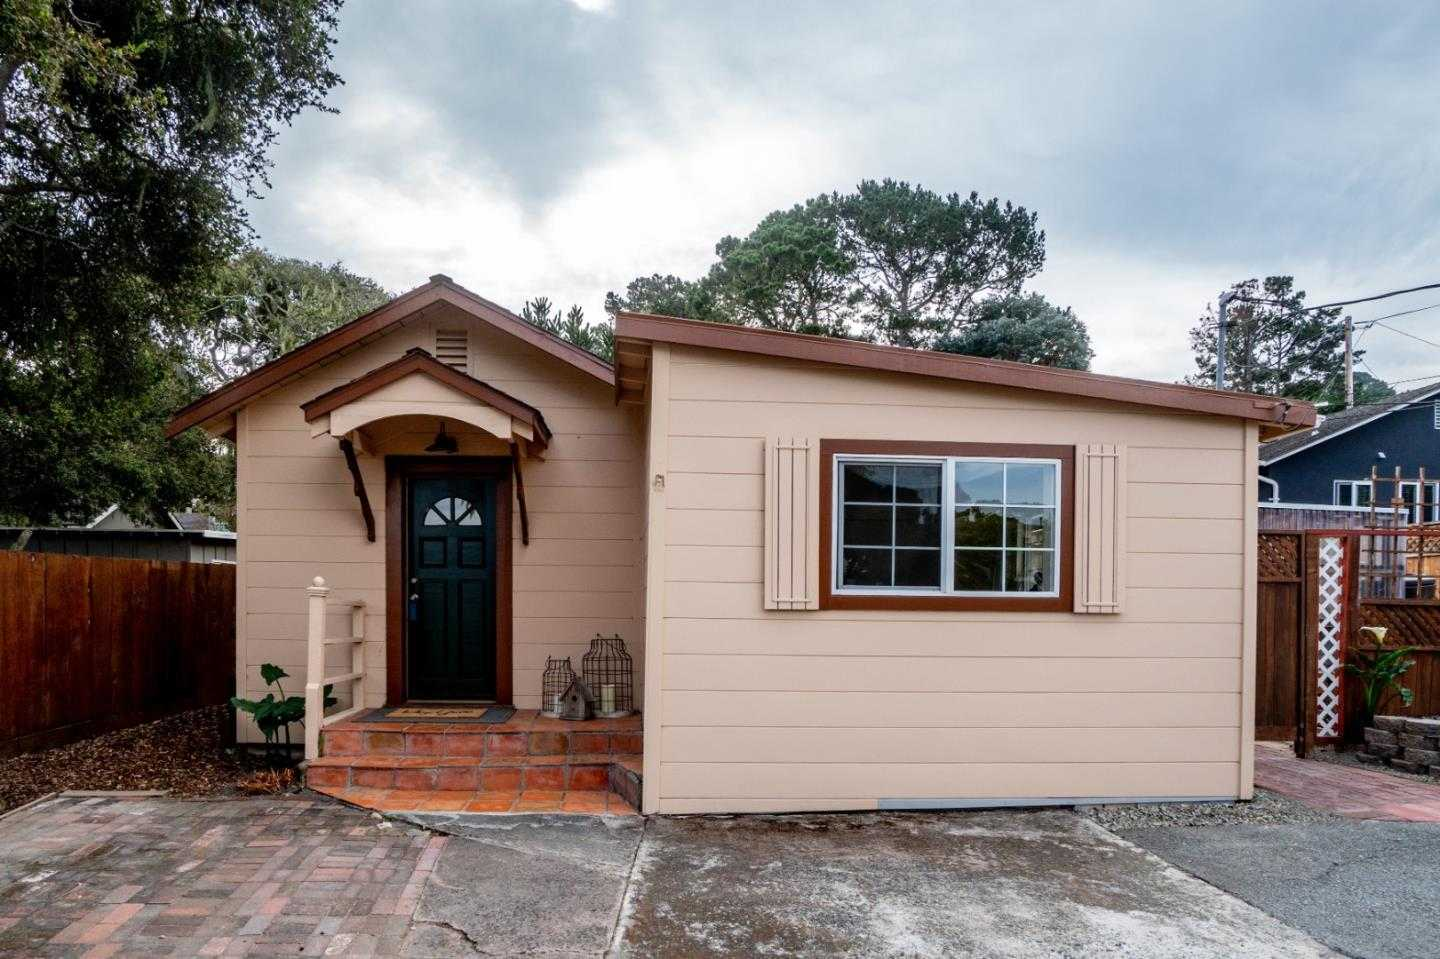 $710,000 - 2Br/1Ba -  for Sale in Monterey